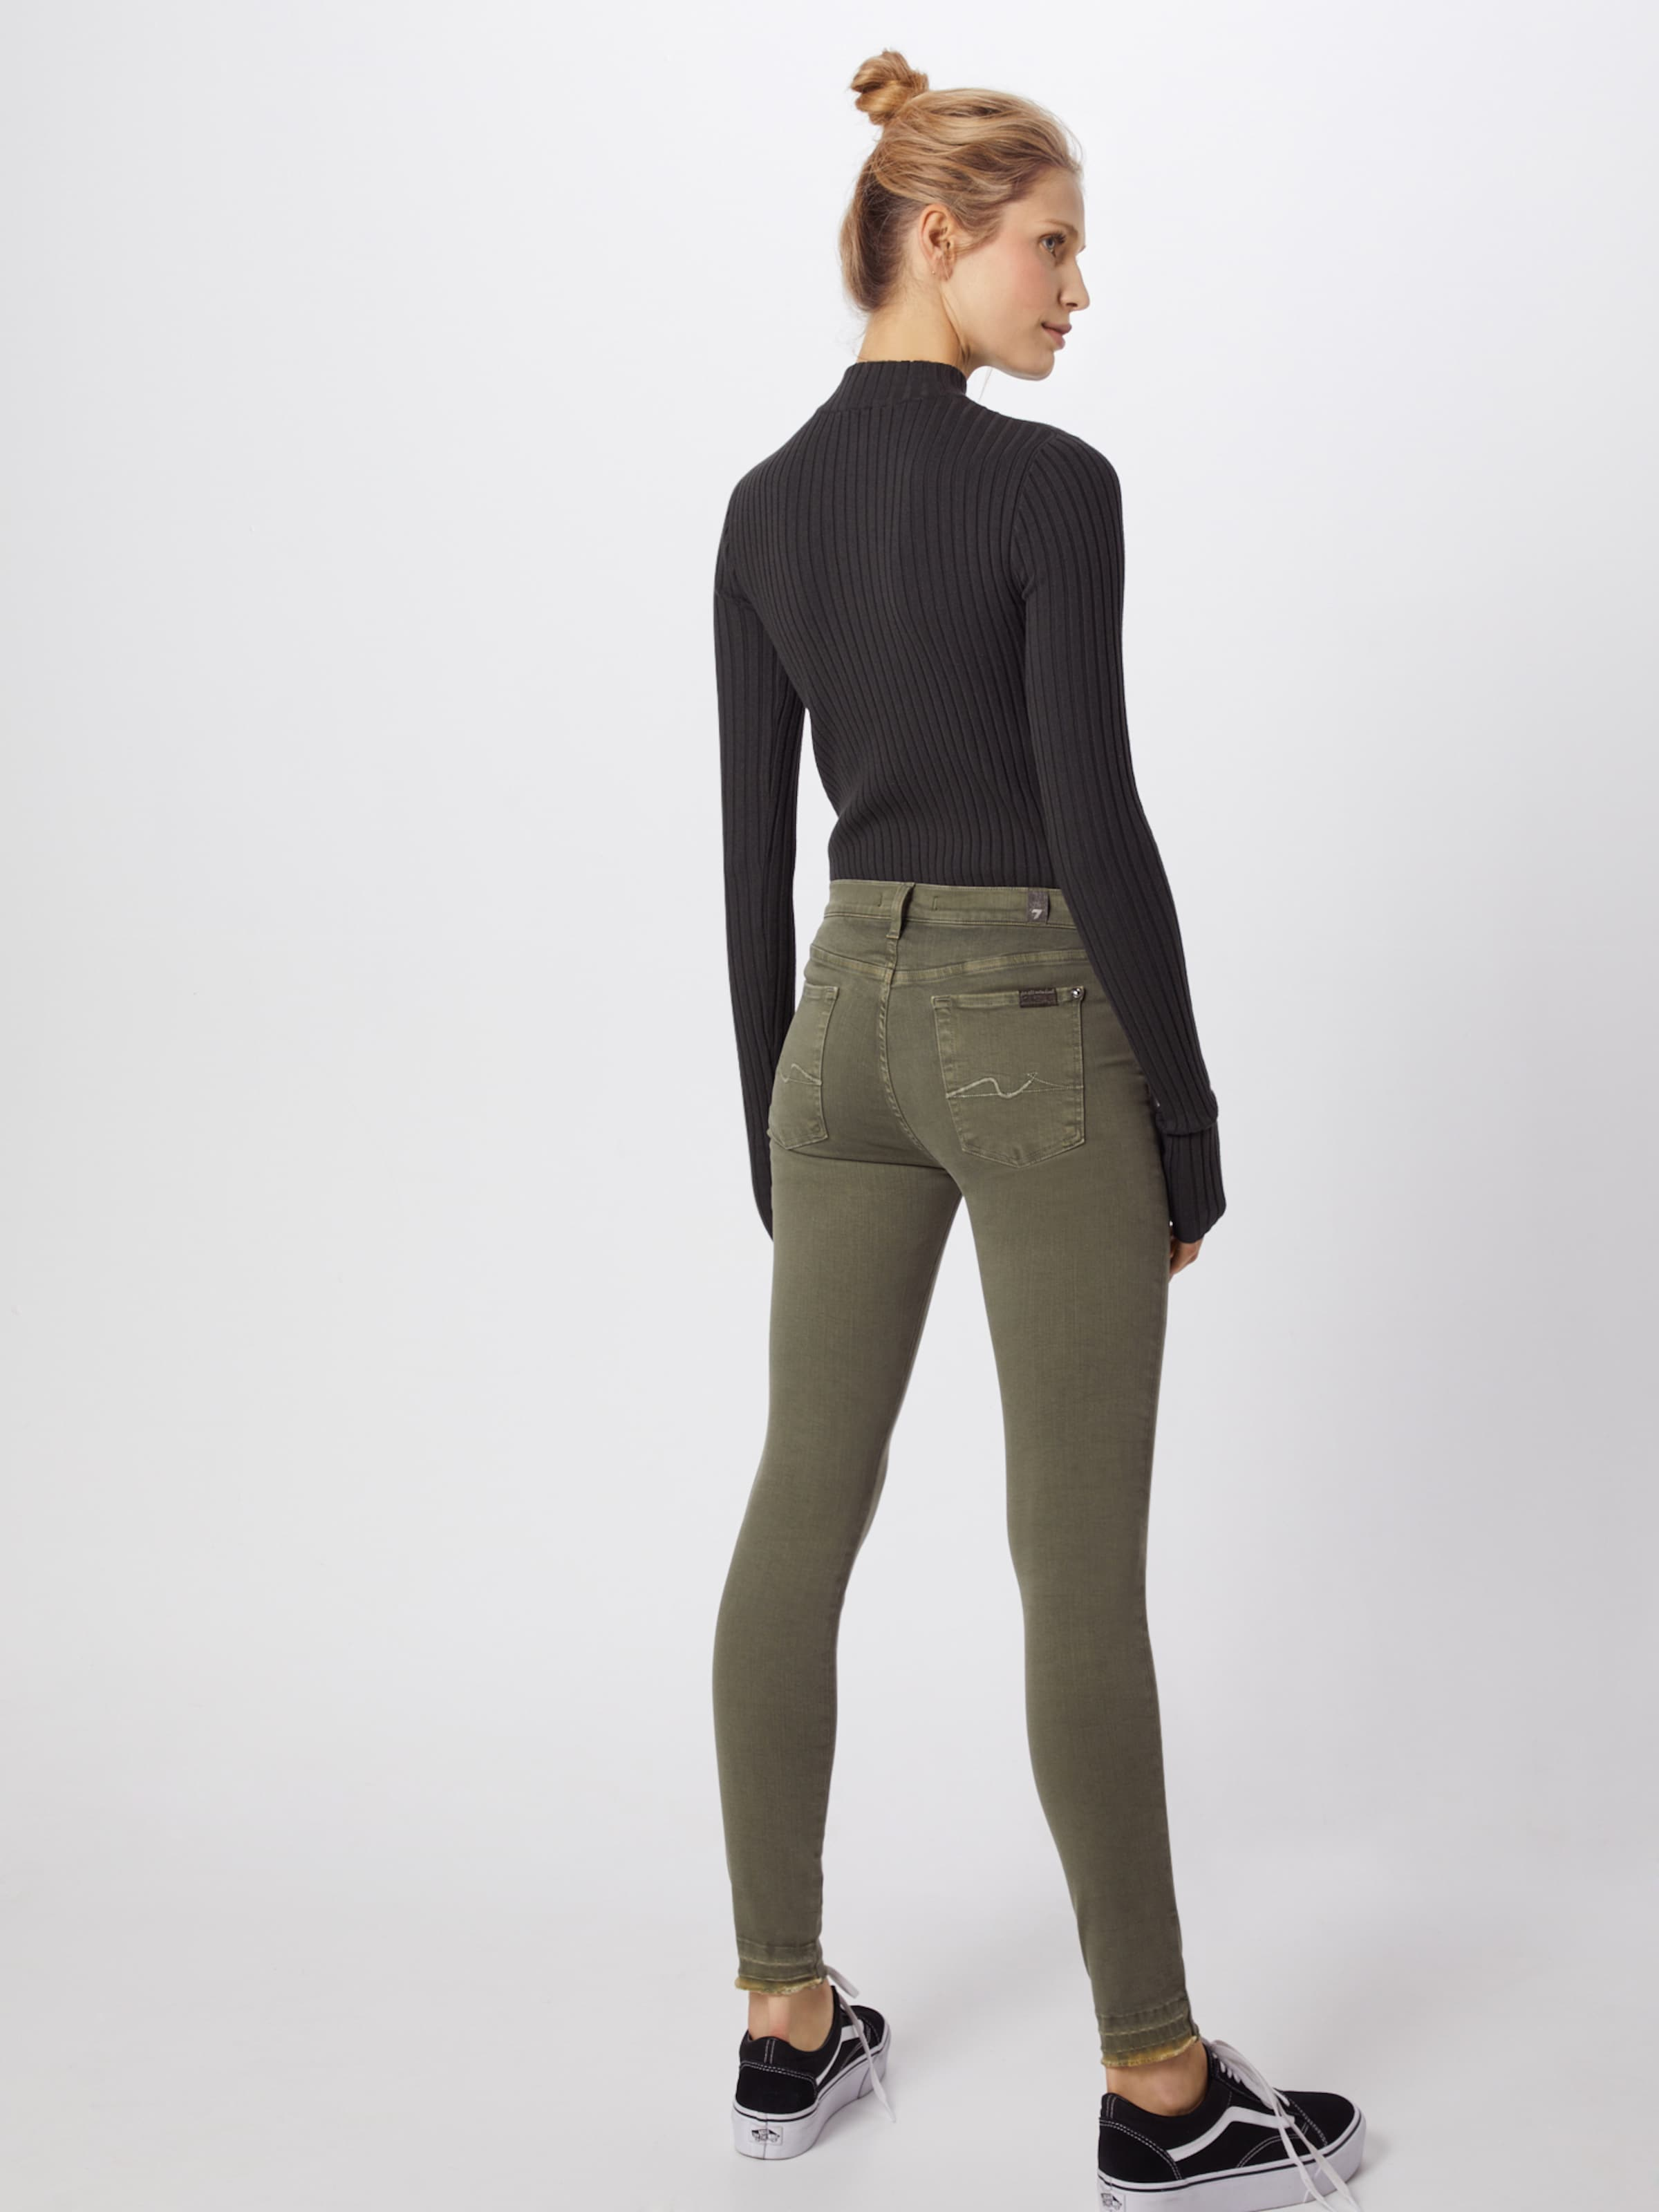 In Khaki Crop' For Jeans Mankind 'the Skinny 7 All 5Lq3A4Rj